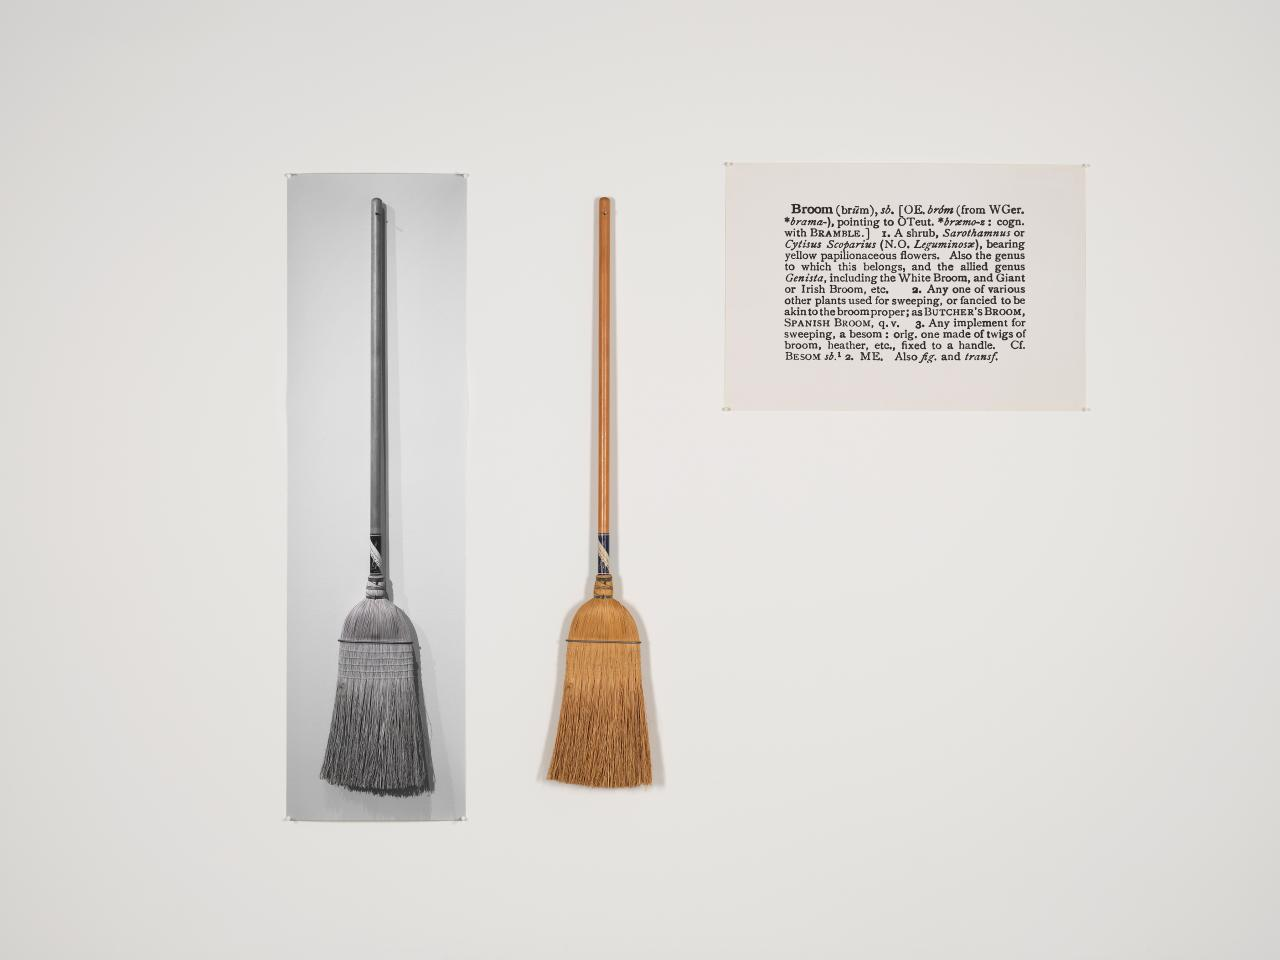 One and three brooms